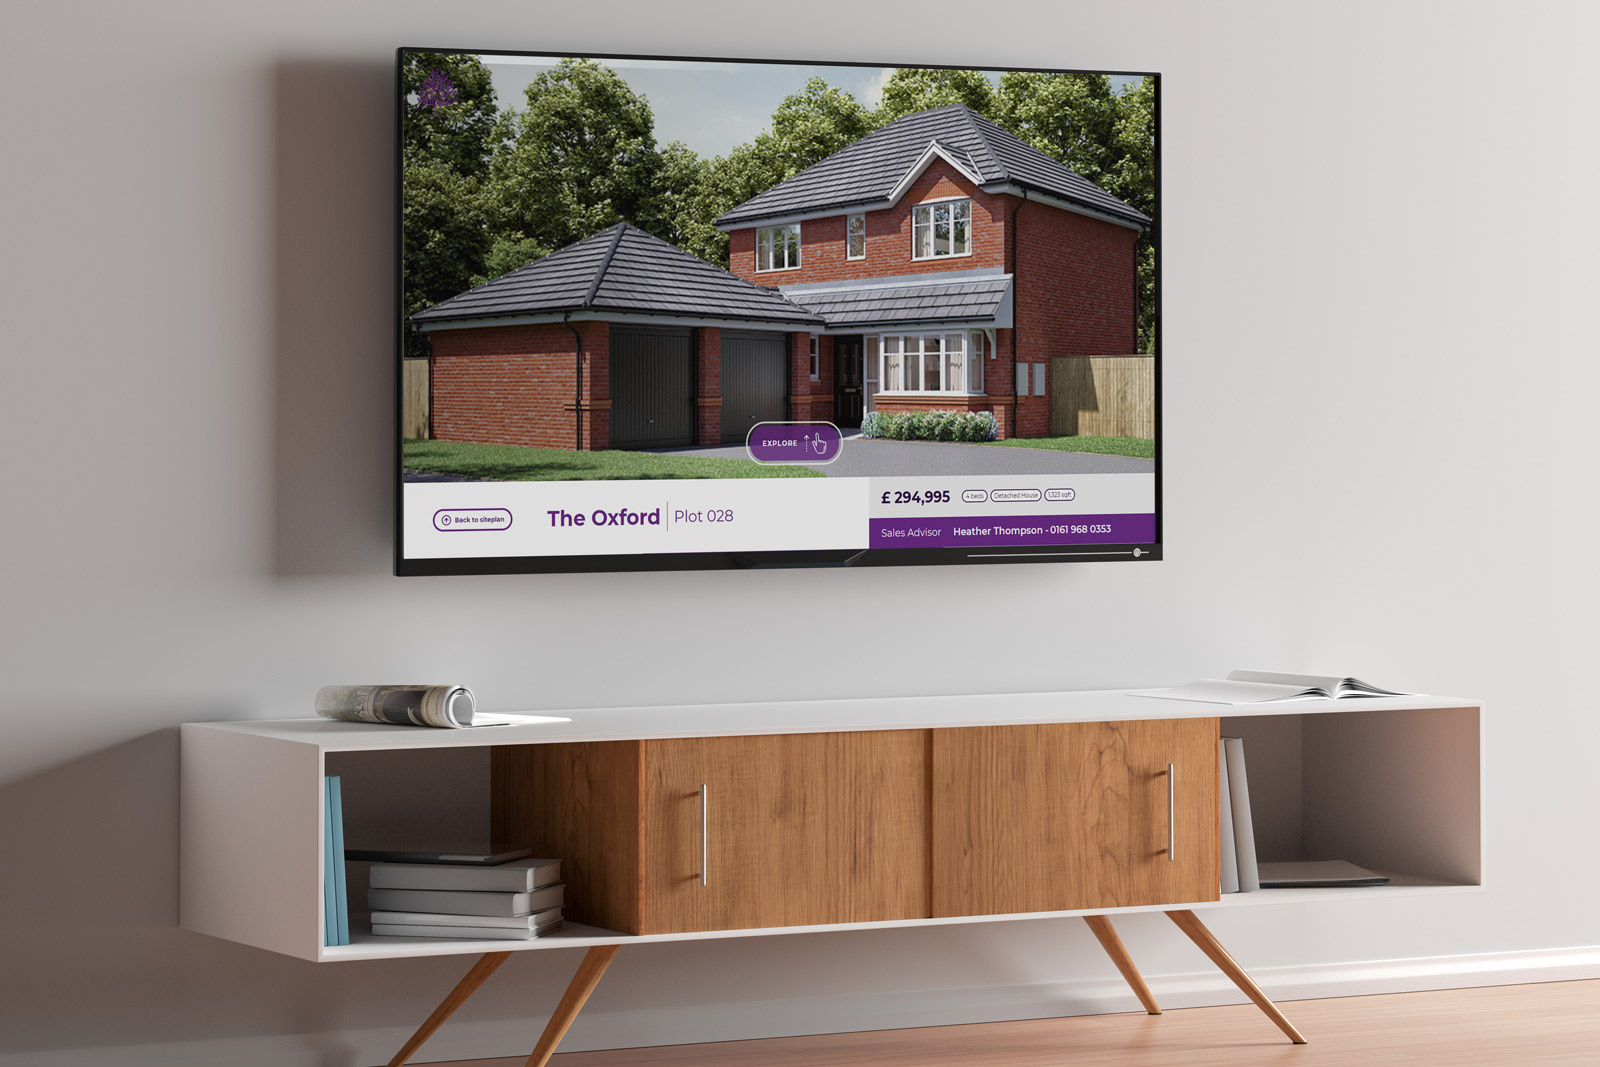 large black monitor displaying Laurus interactive presentation of house above white and wooden panelled cupboard